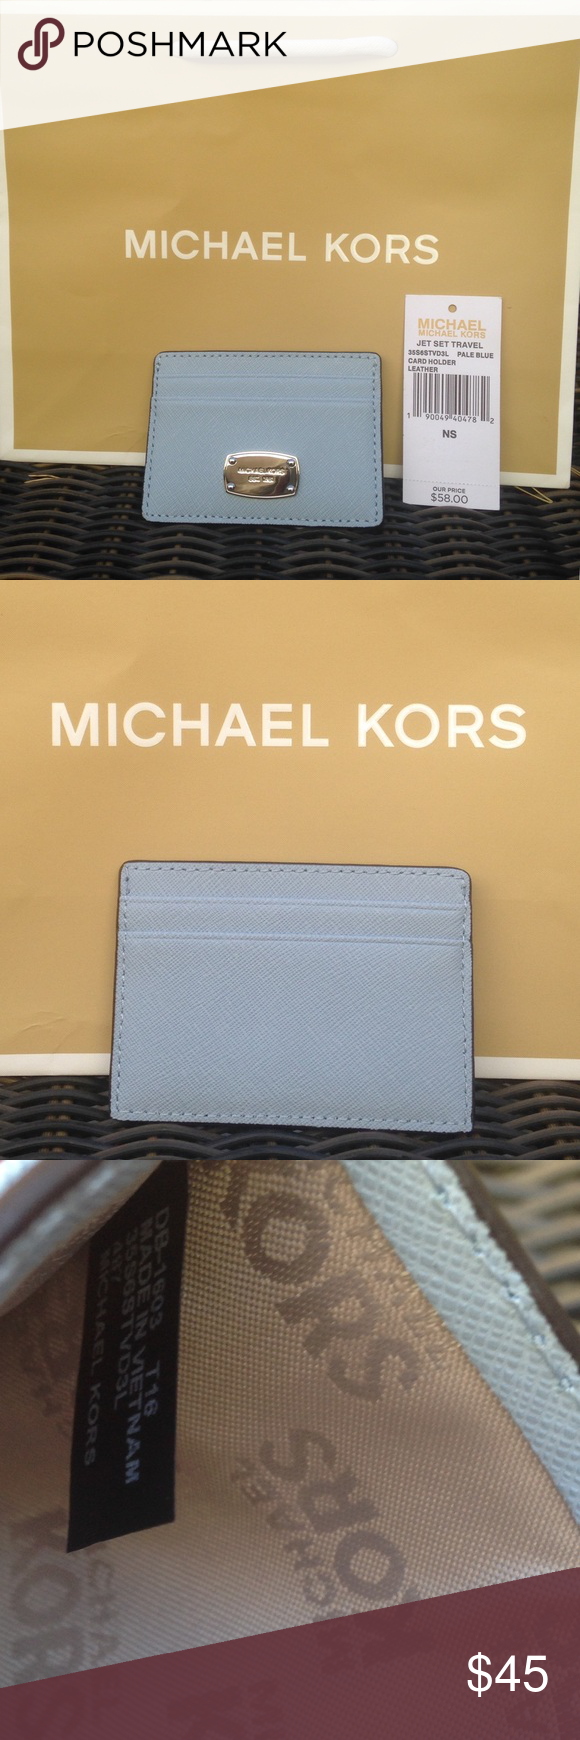 0ba27ee0b73a MK Jet Set Travel Leather Card Holder Michael Kors Jet Set Travel Leather Card  Holder Pale Blue with Silver MK badge. Four card slots; currency pocket in  ...